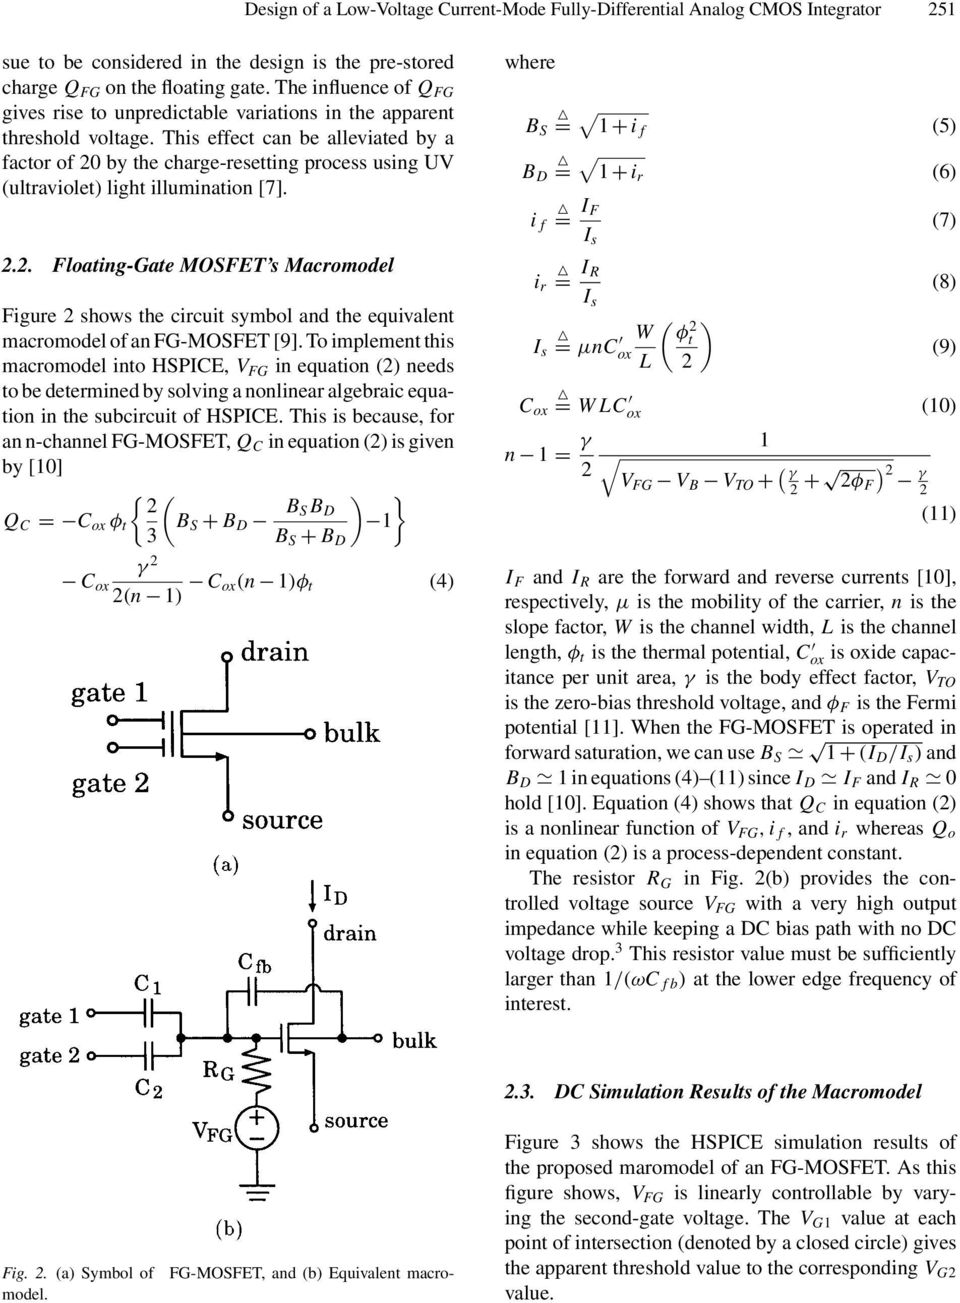 A Design Of Low Voltage Current Mode Fully Differential Analog Regulator Equivalent Circuit Analogcircuit Basiccircuit This Effect Can Be Alleviated By Factor 20 The Charge Resetting Process